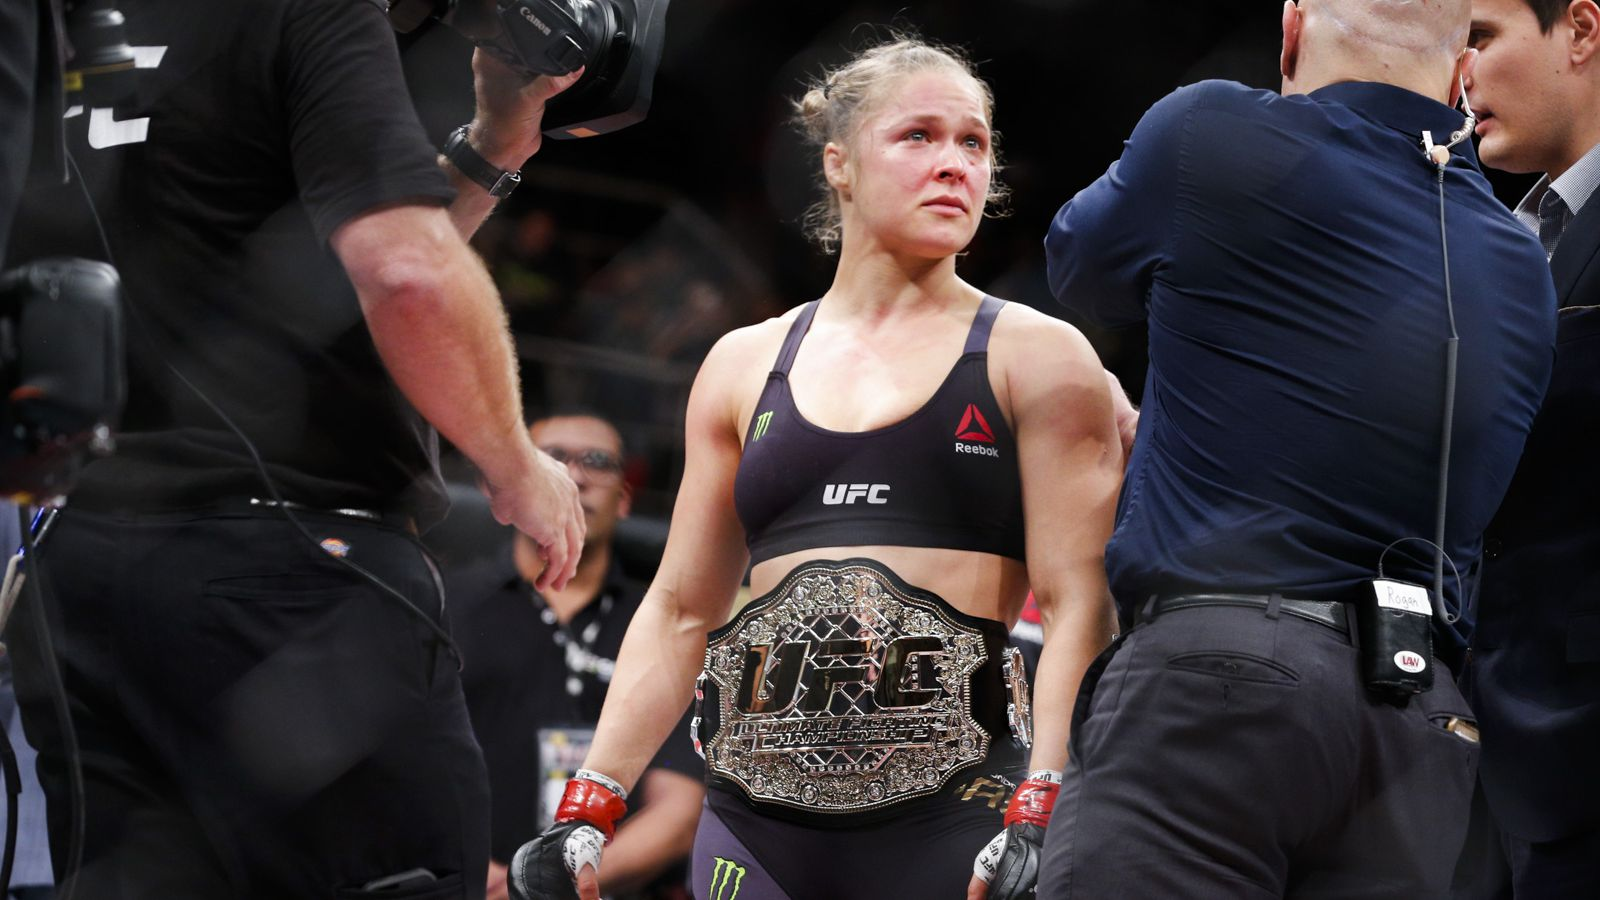 Ronda rousey powers fox sports 1 to two new records mma fighting